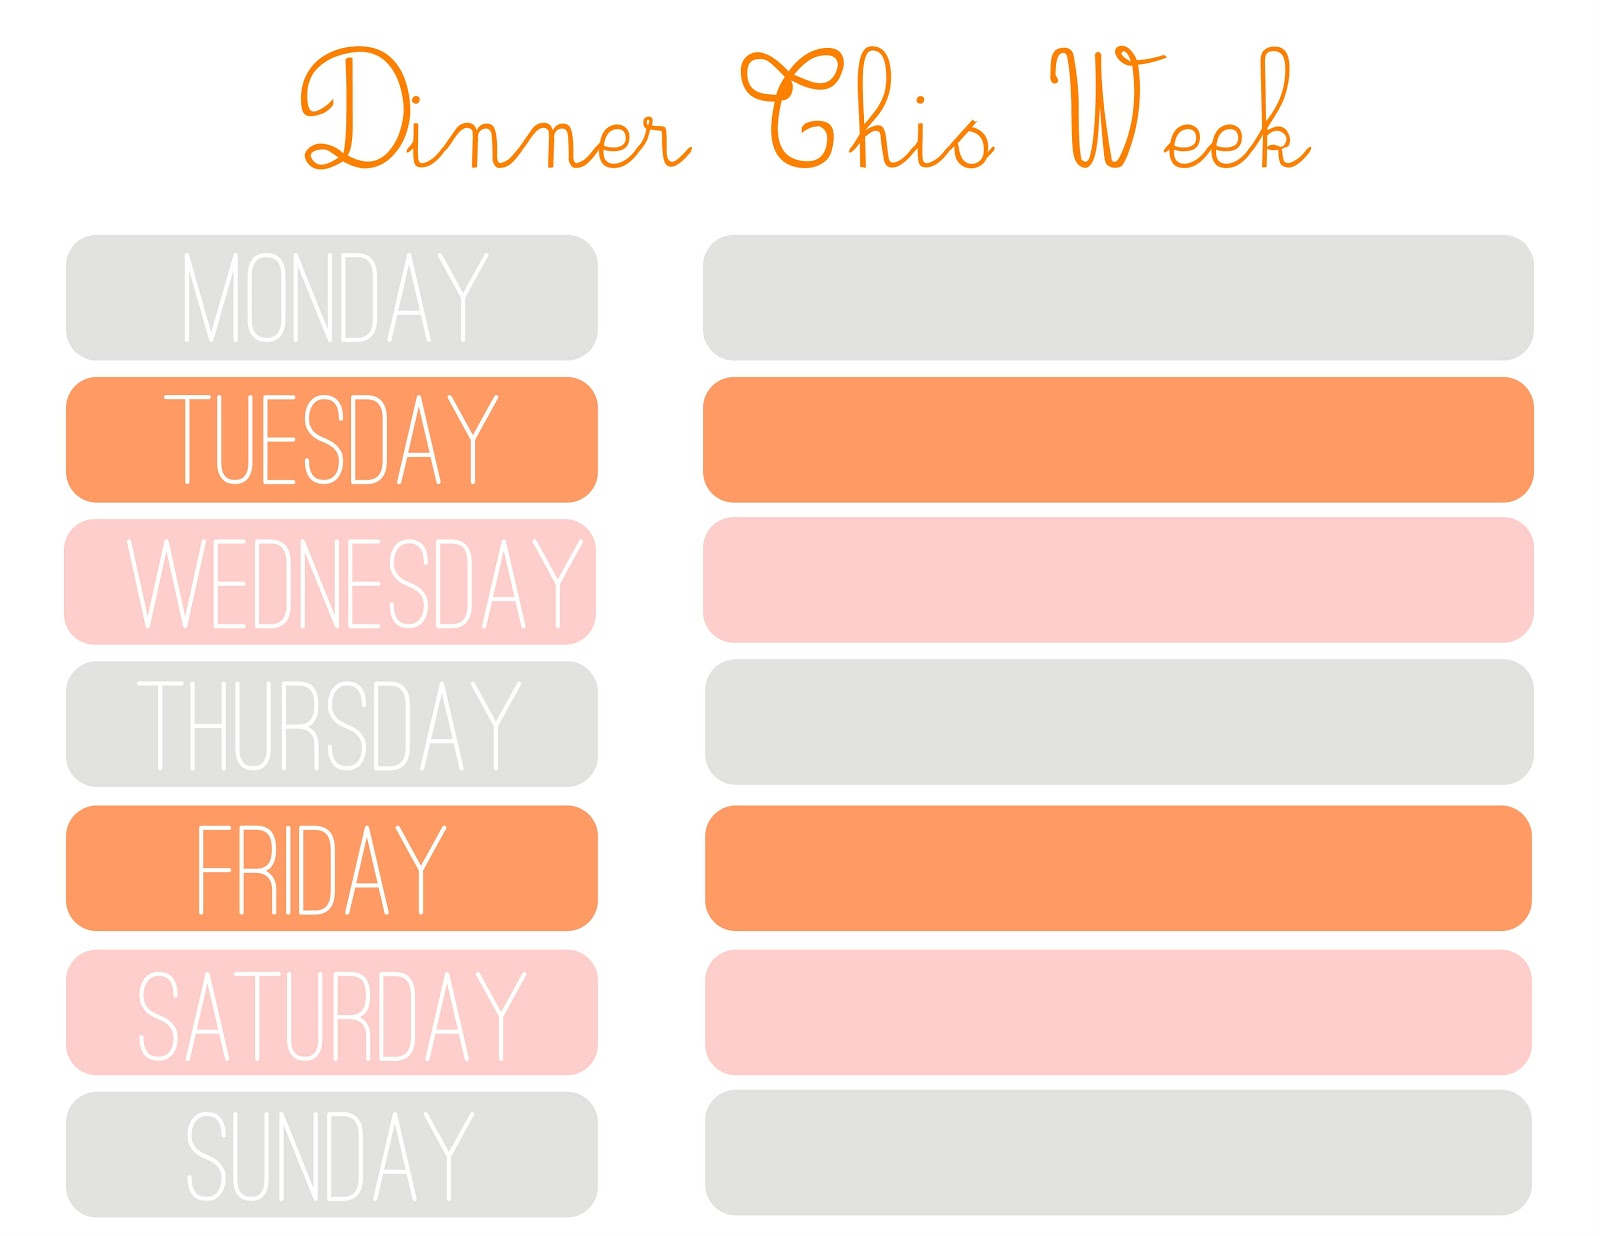 FREE PRINTABLES OF THE DAY: Meal Planner Printable  The Lady Blogger